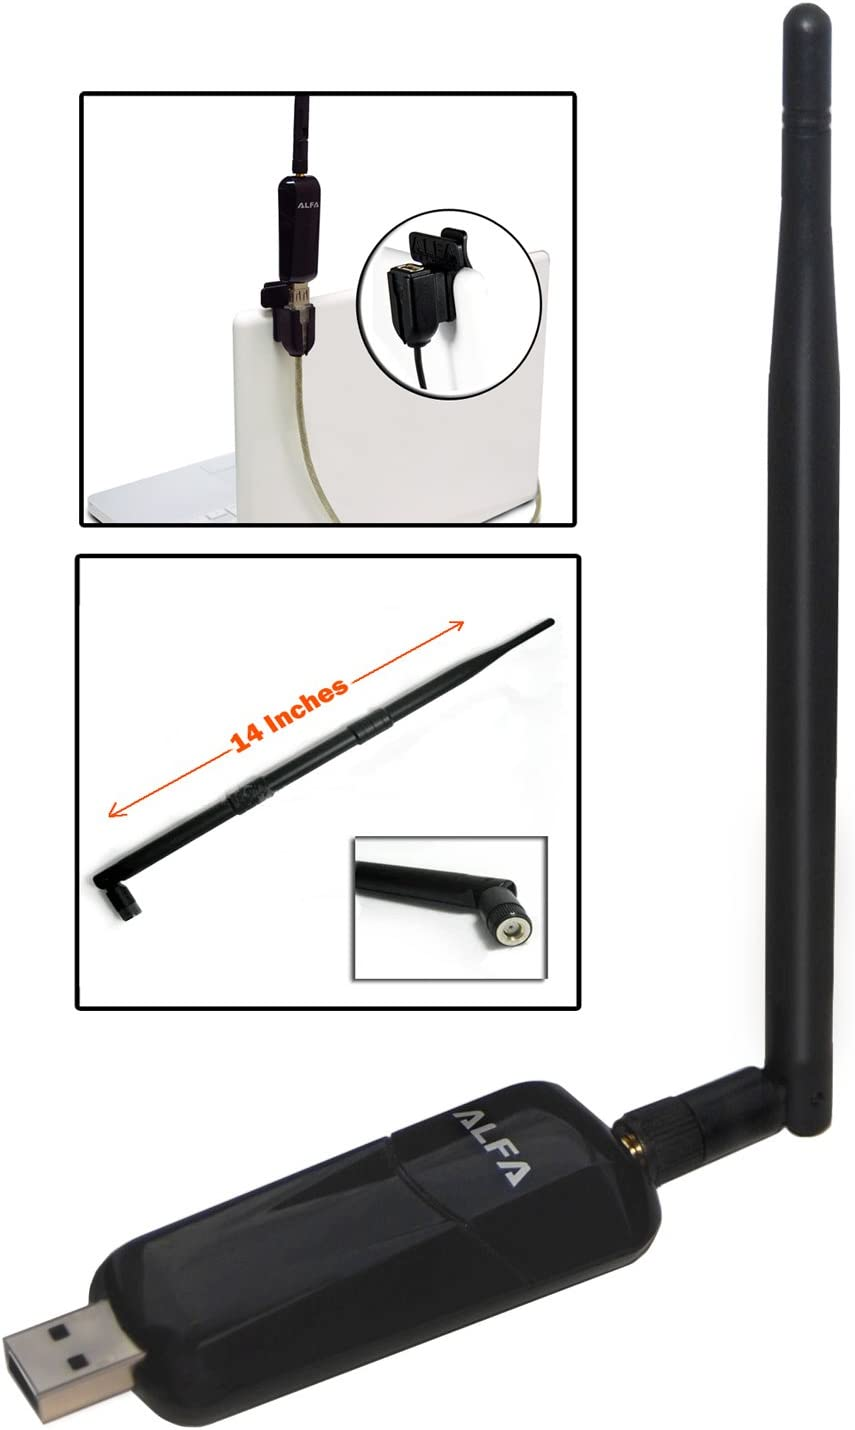 1000mW 1W 802.11g/n High Gain USB Wireless G / N Long-Rang WiFi Network Adapter - Dongle With Original Alfa 5dBi and 9dBi Rubber Antenna and USB Dongle clip, Suction cup and Extension cable for easy use